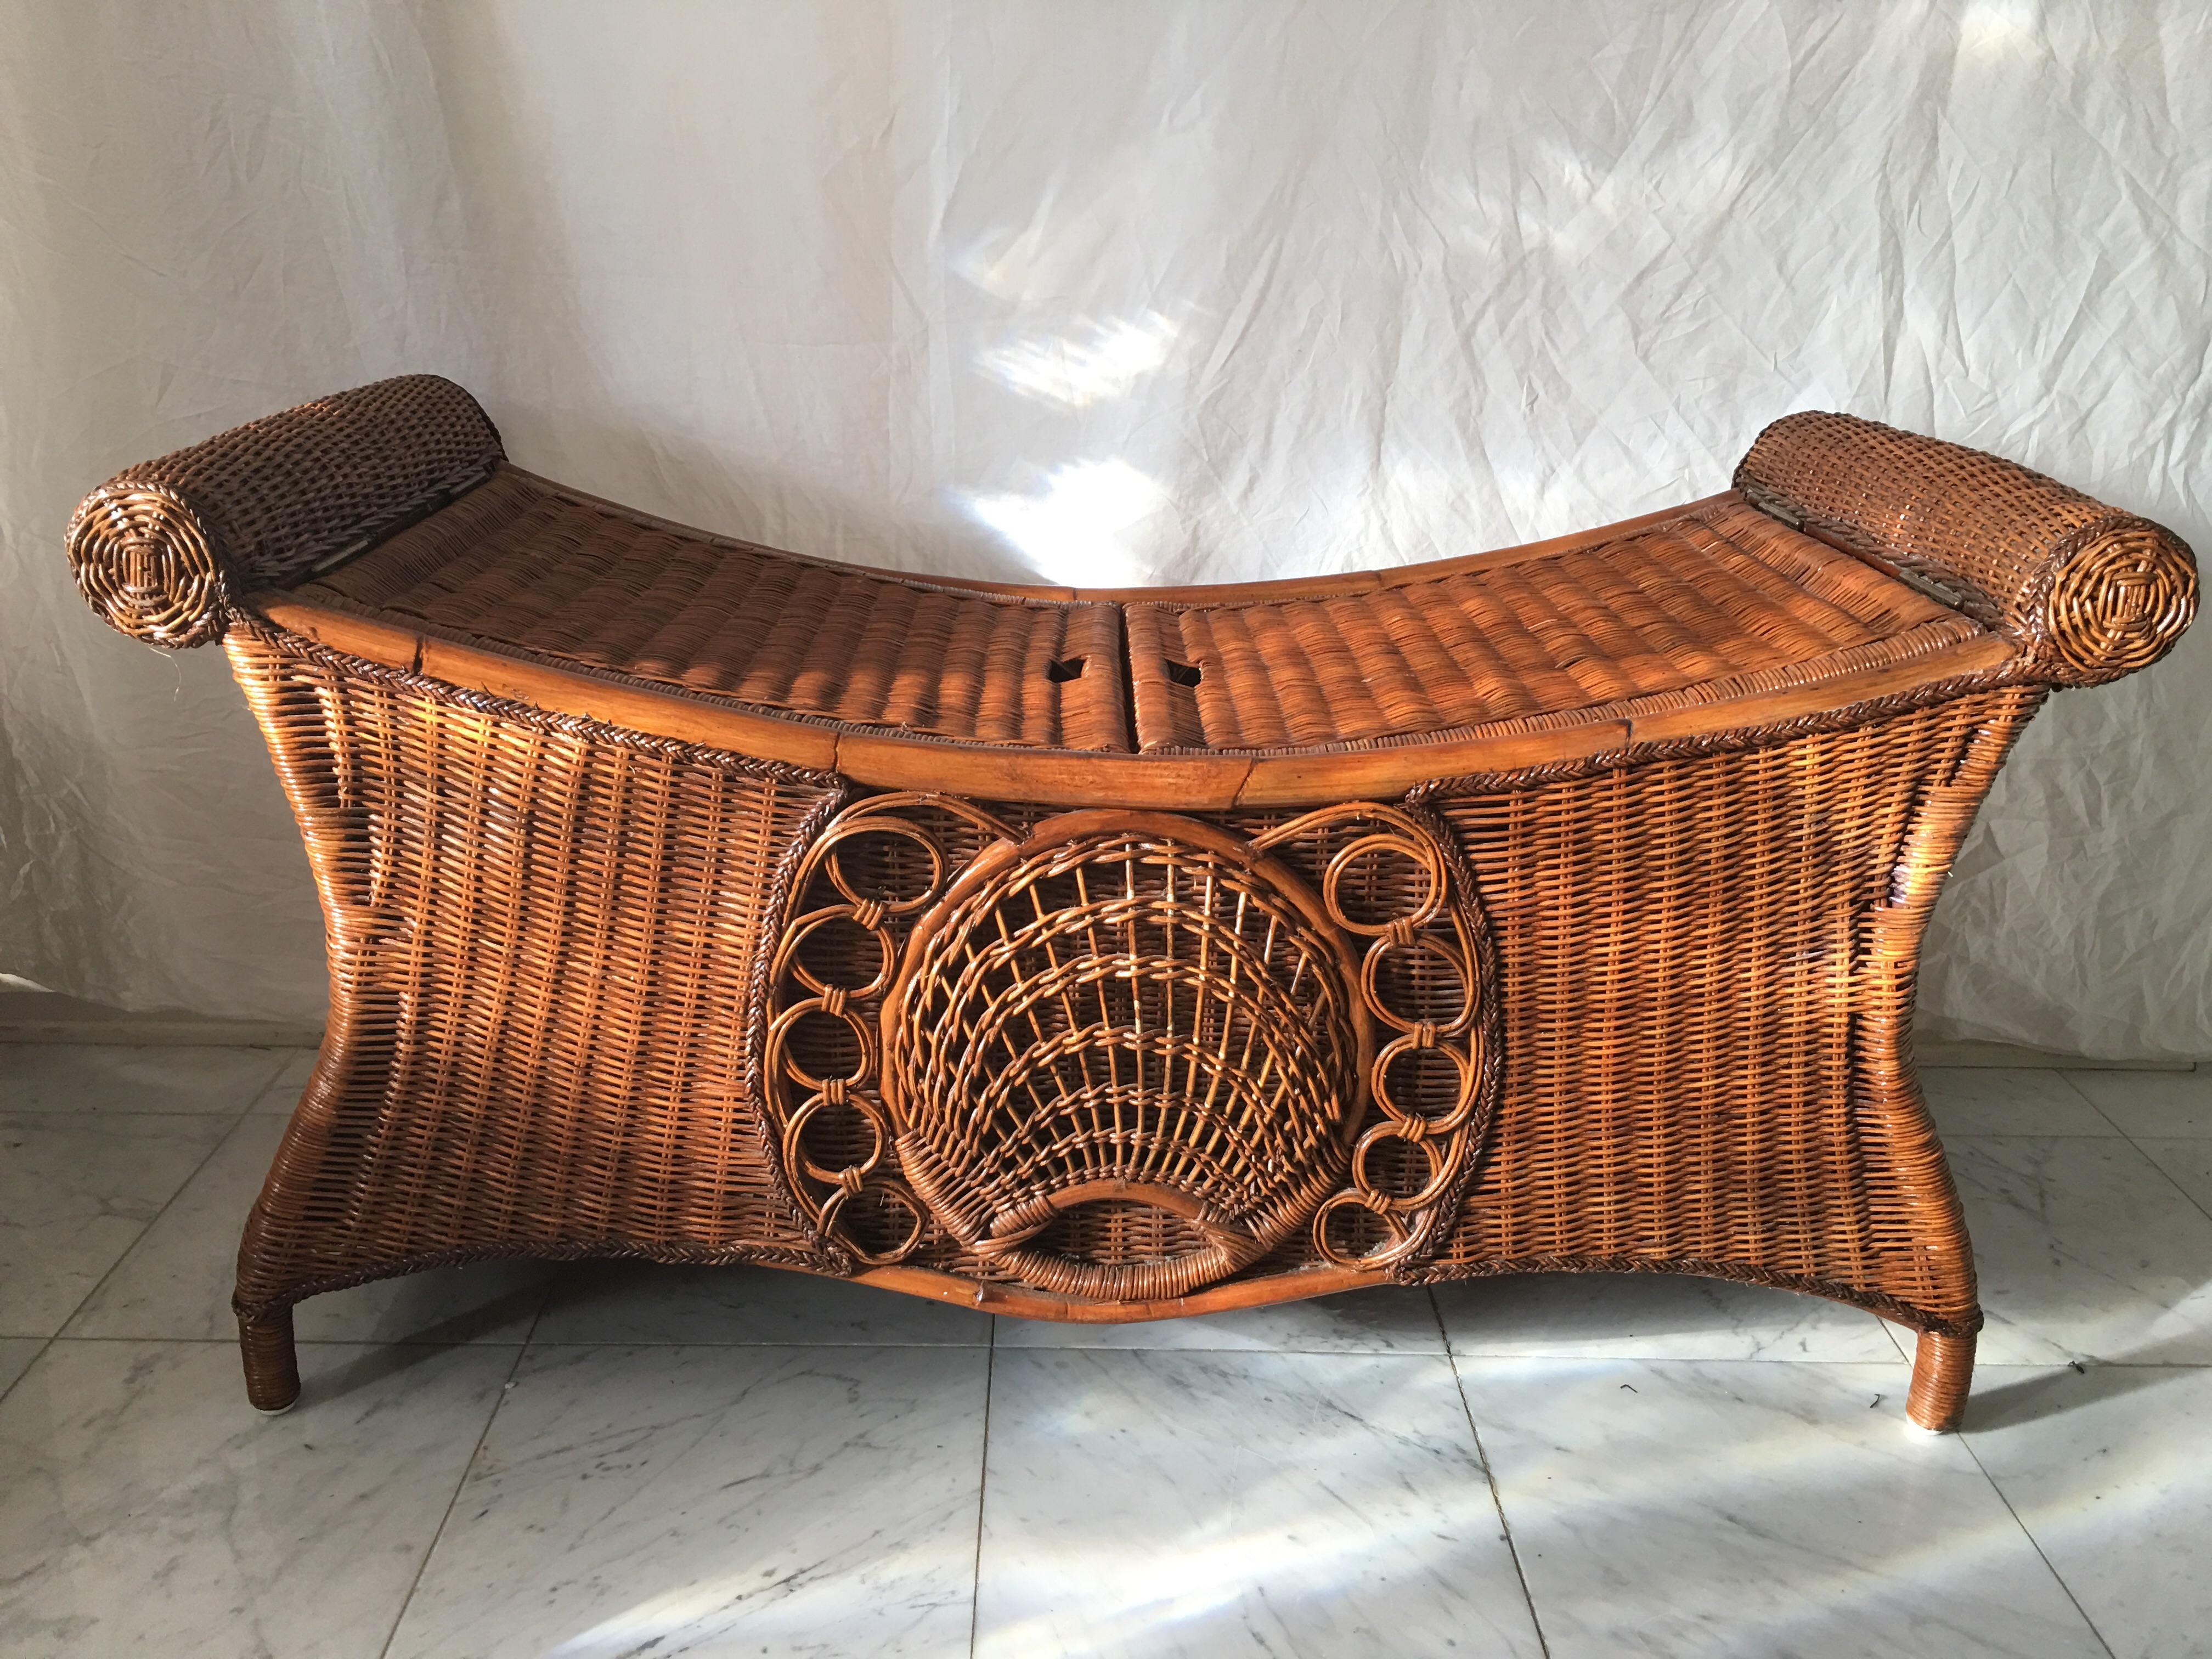 Delicieux Vintage Wicker Storage Bench   Image 8 Of 8